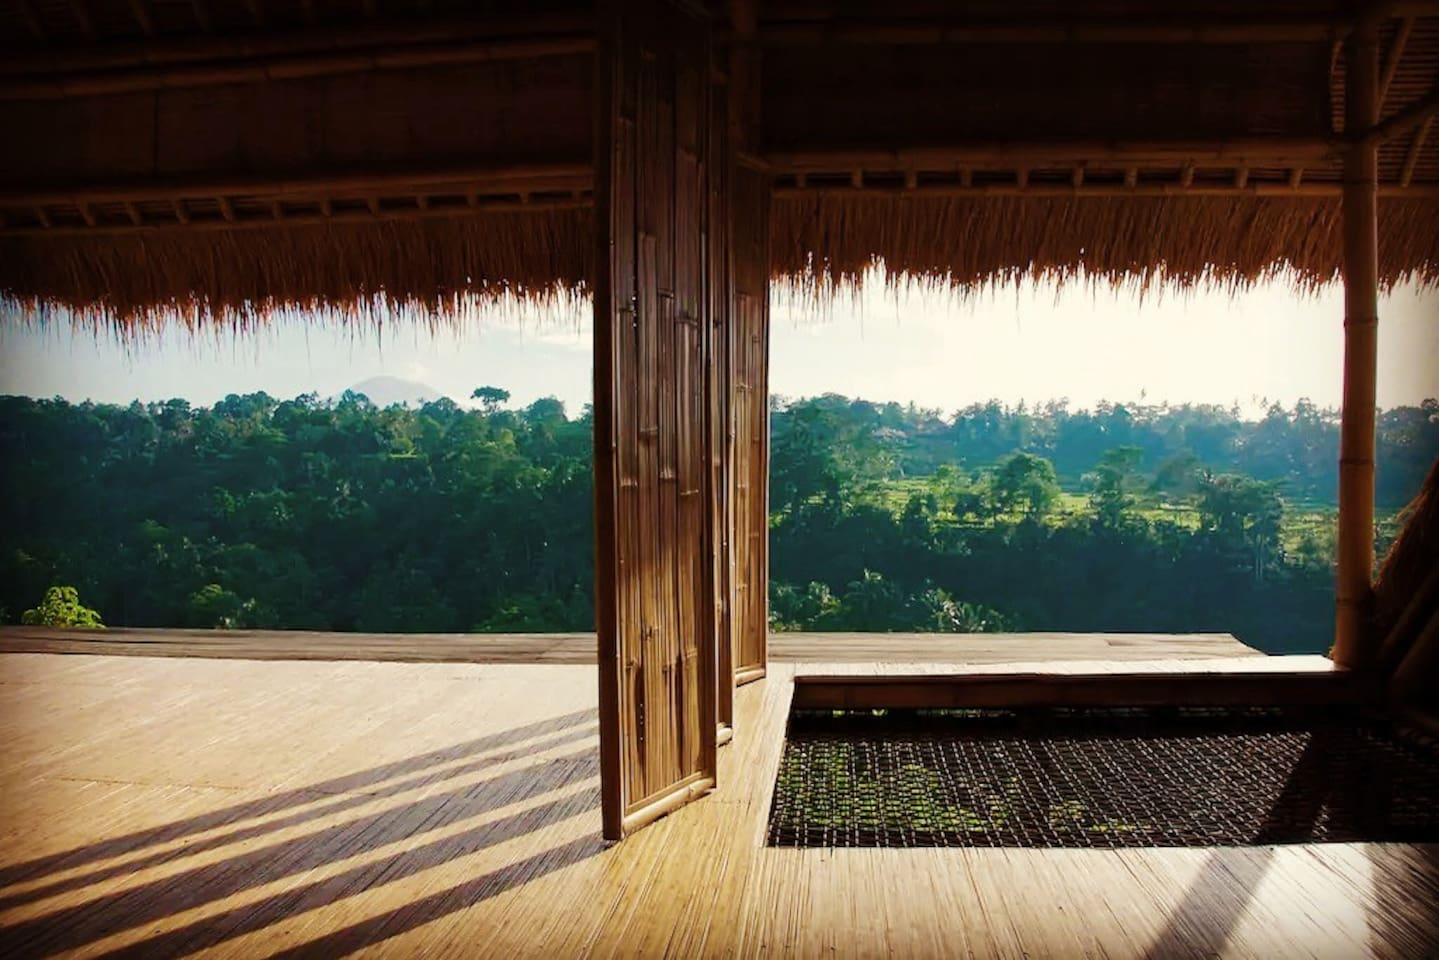 Panorama Room with a view to Ayung River Gorge Mt. Agung afar. Designed to bring you closer to nature! You will feel the mystic and magic of the nature in front of you with the change of weather, disappearing and reappearing. It is ephemeral!